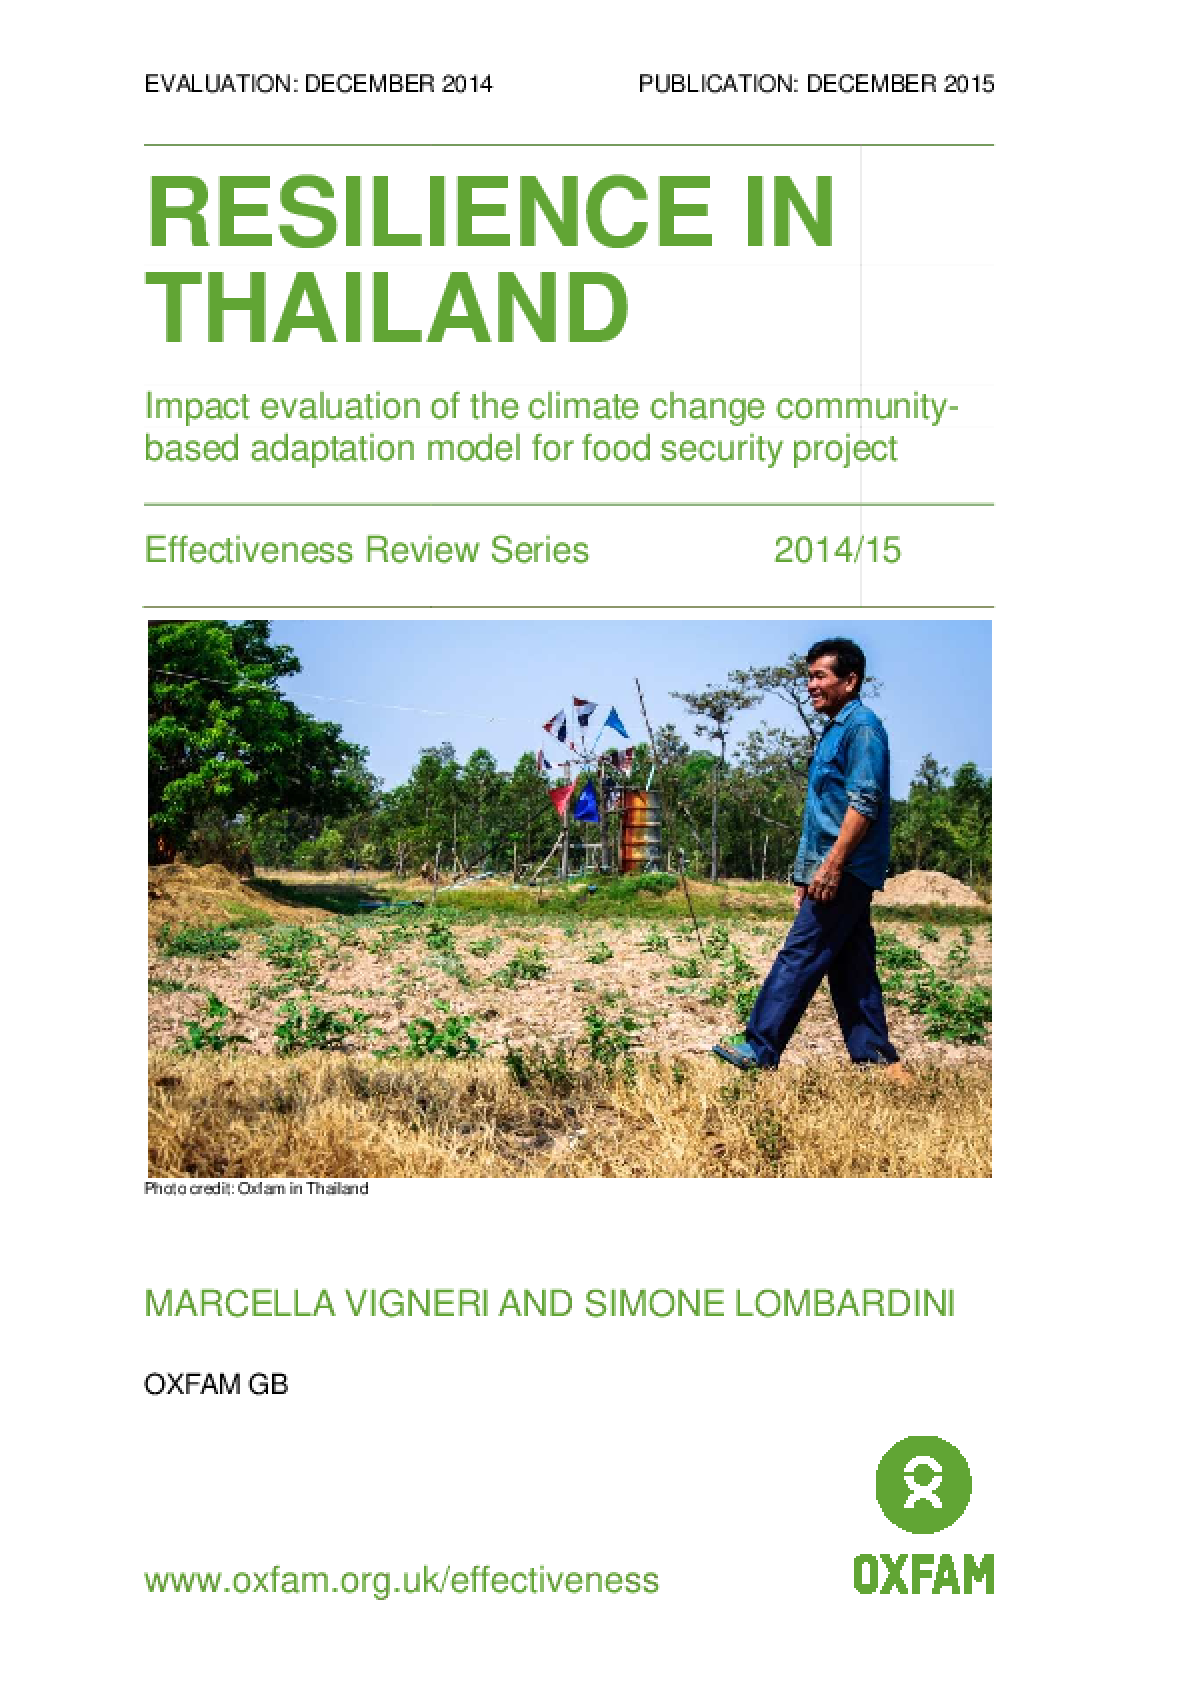 Resilience in Thailand: Impact evaluation of the climate change community-based adaptation model for food security project